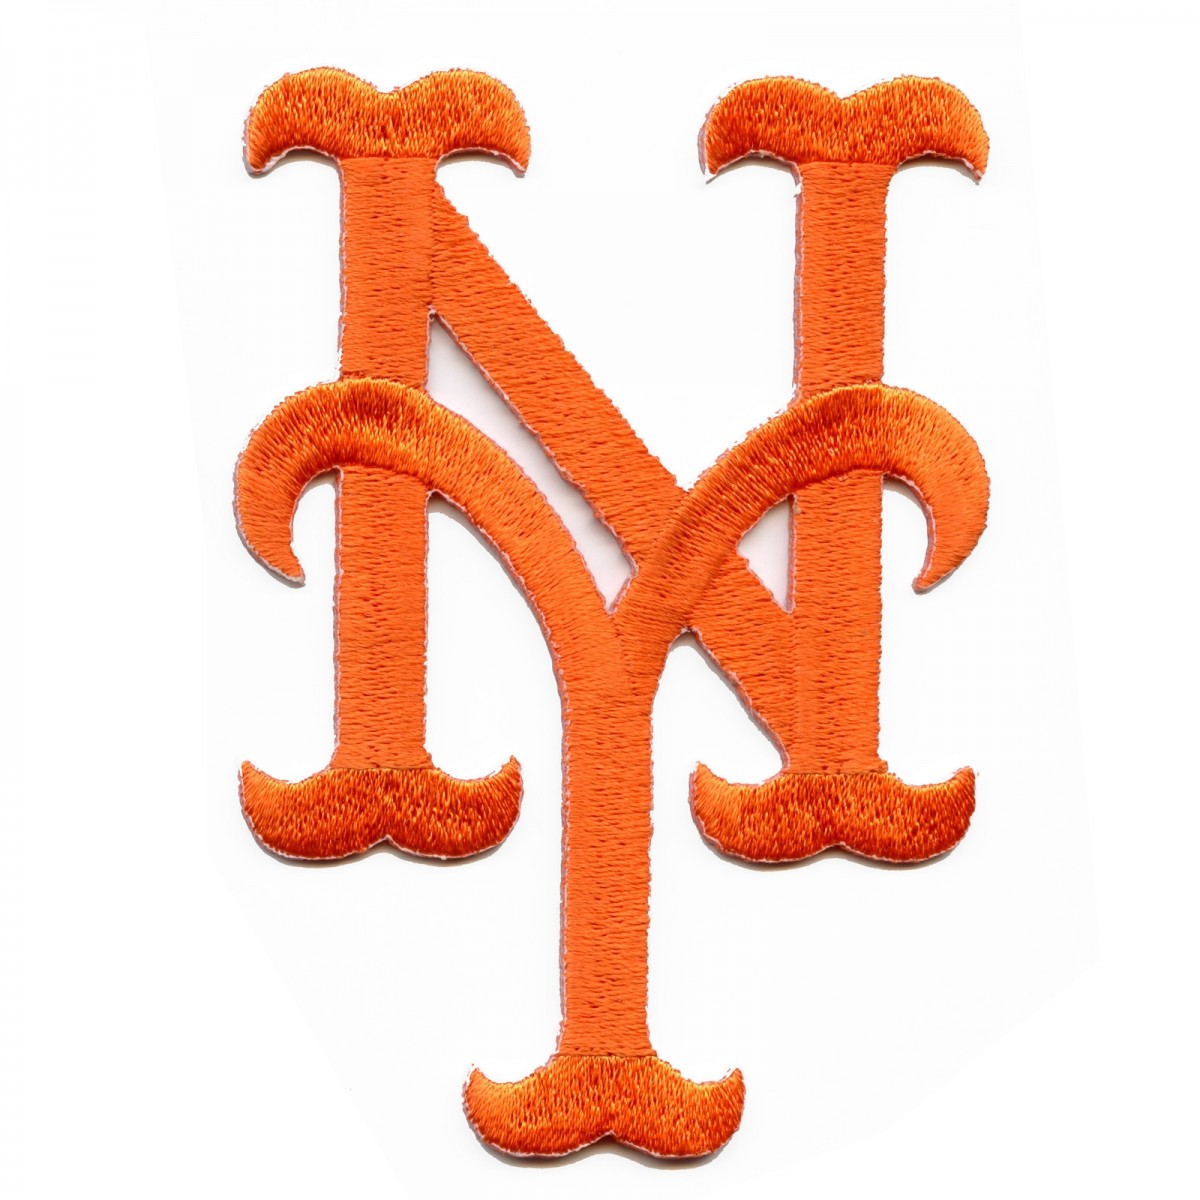 New York Mets Hat Logo Iron On Embroidered Patch.